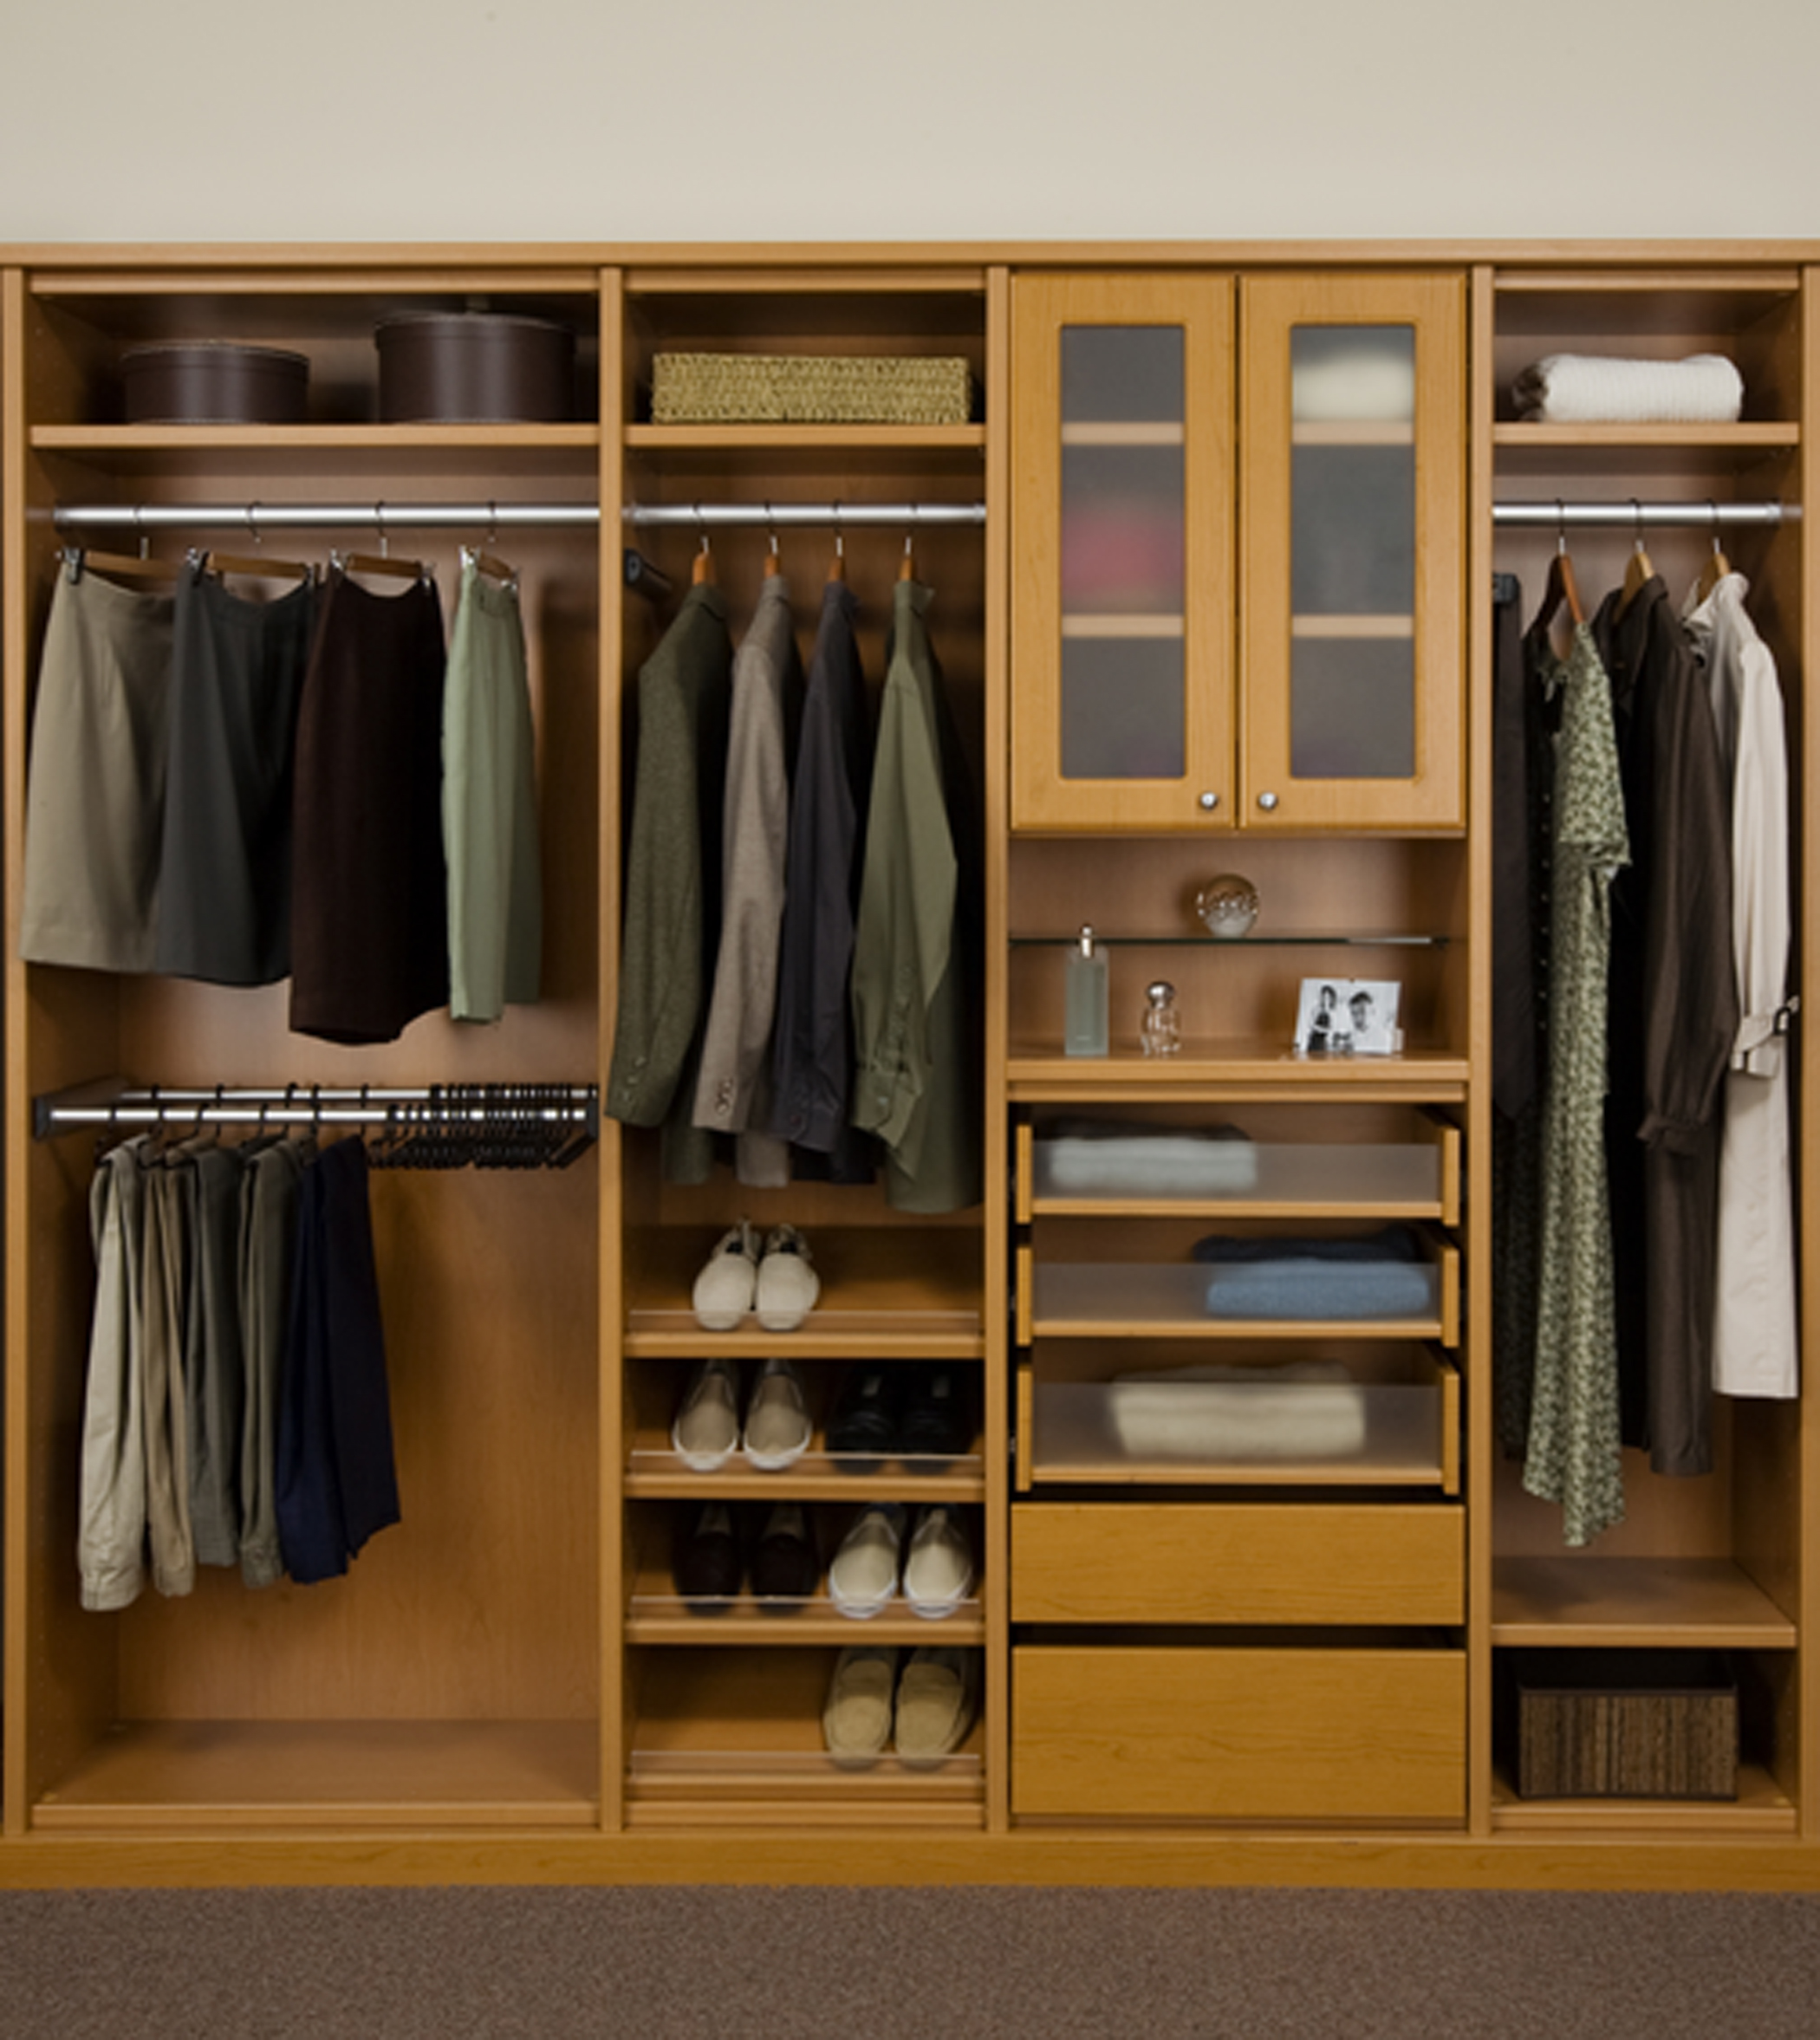 Classic Wooden Closet Organizer For Small Closet Idea In Beige Color With  Storage Glass And Drawers